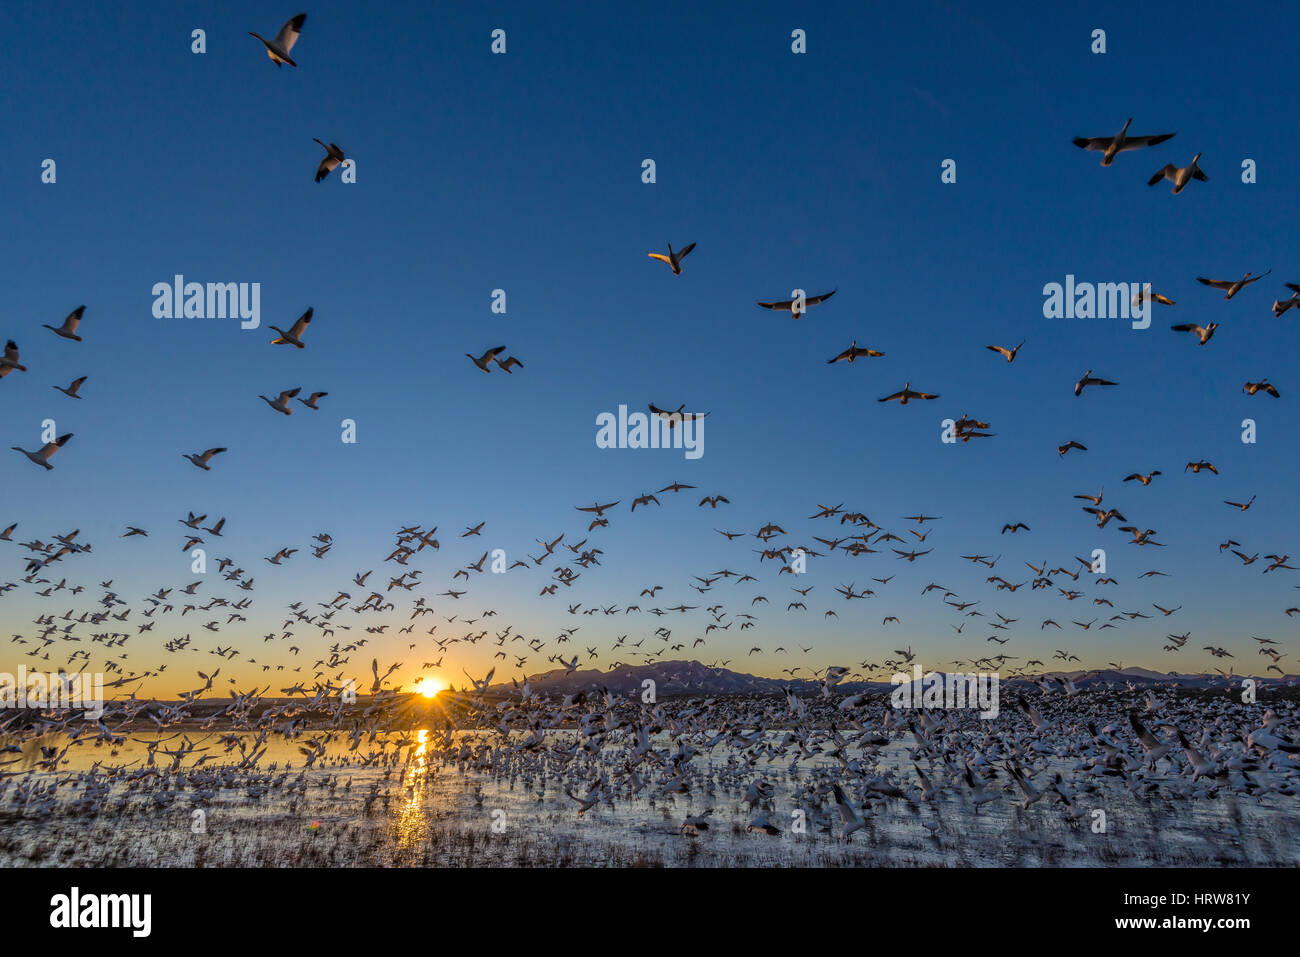 Snow geese at Bosque del Apache National Wildlife Refuge, New Mexico. Stock Photo